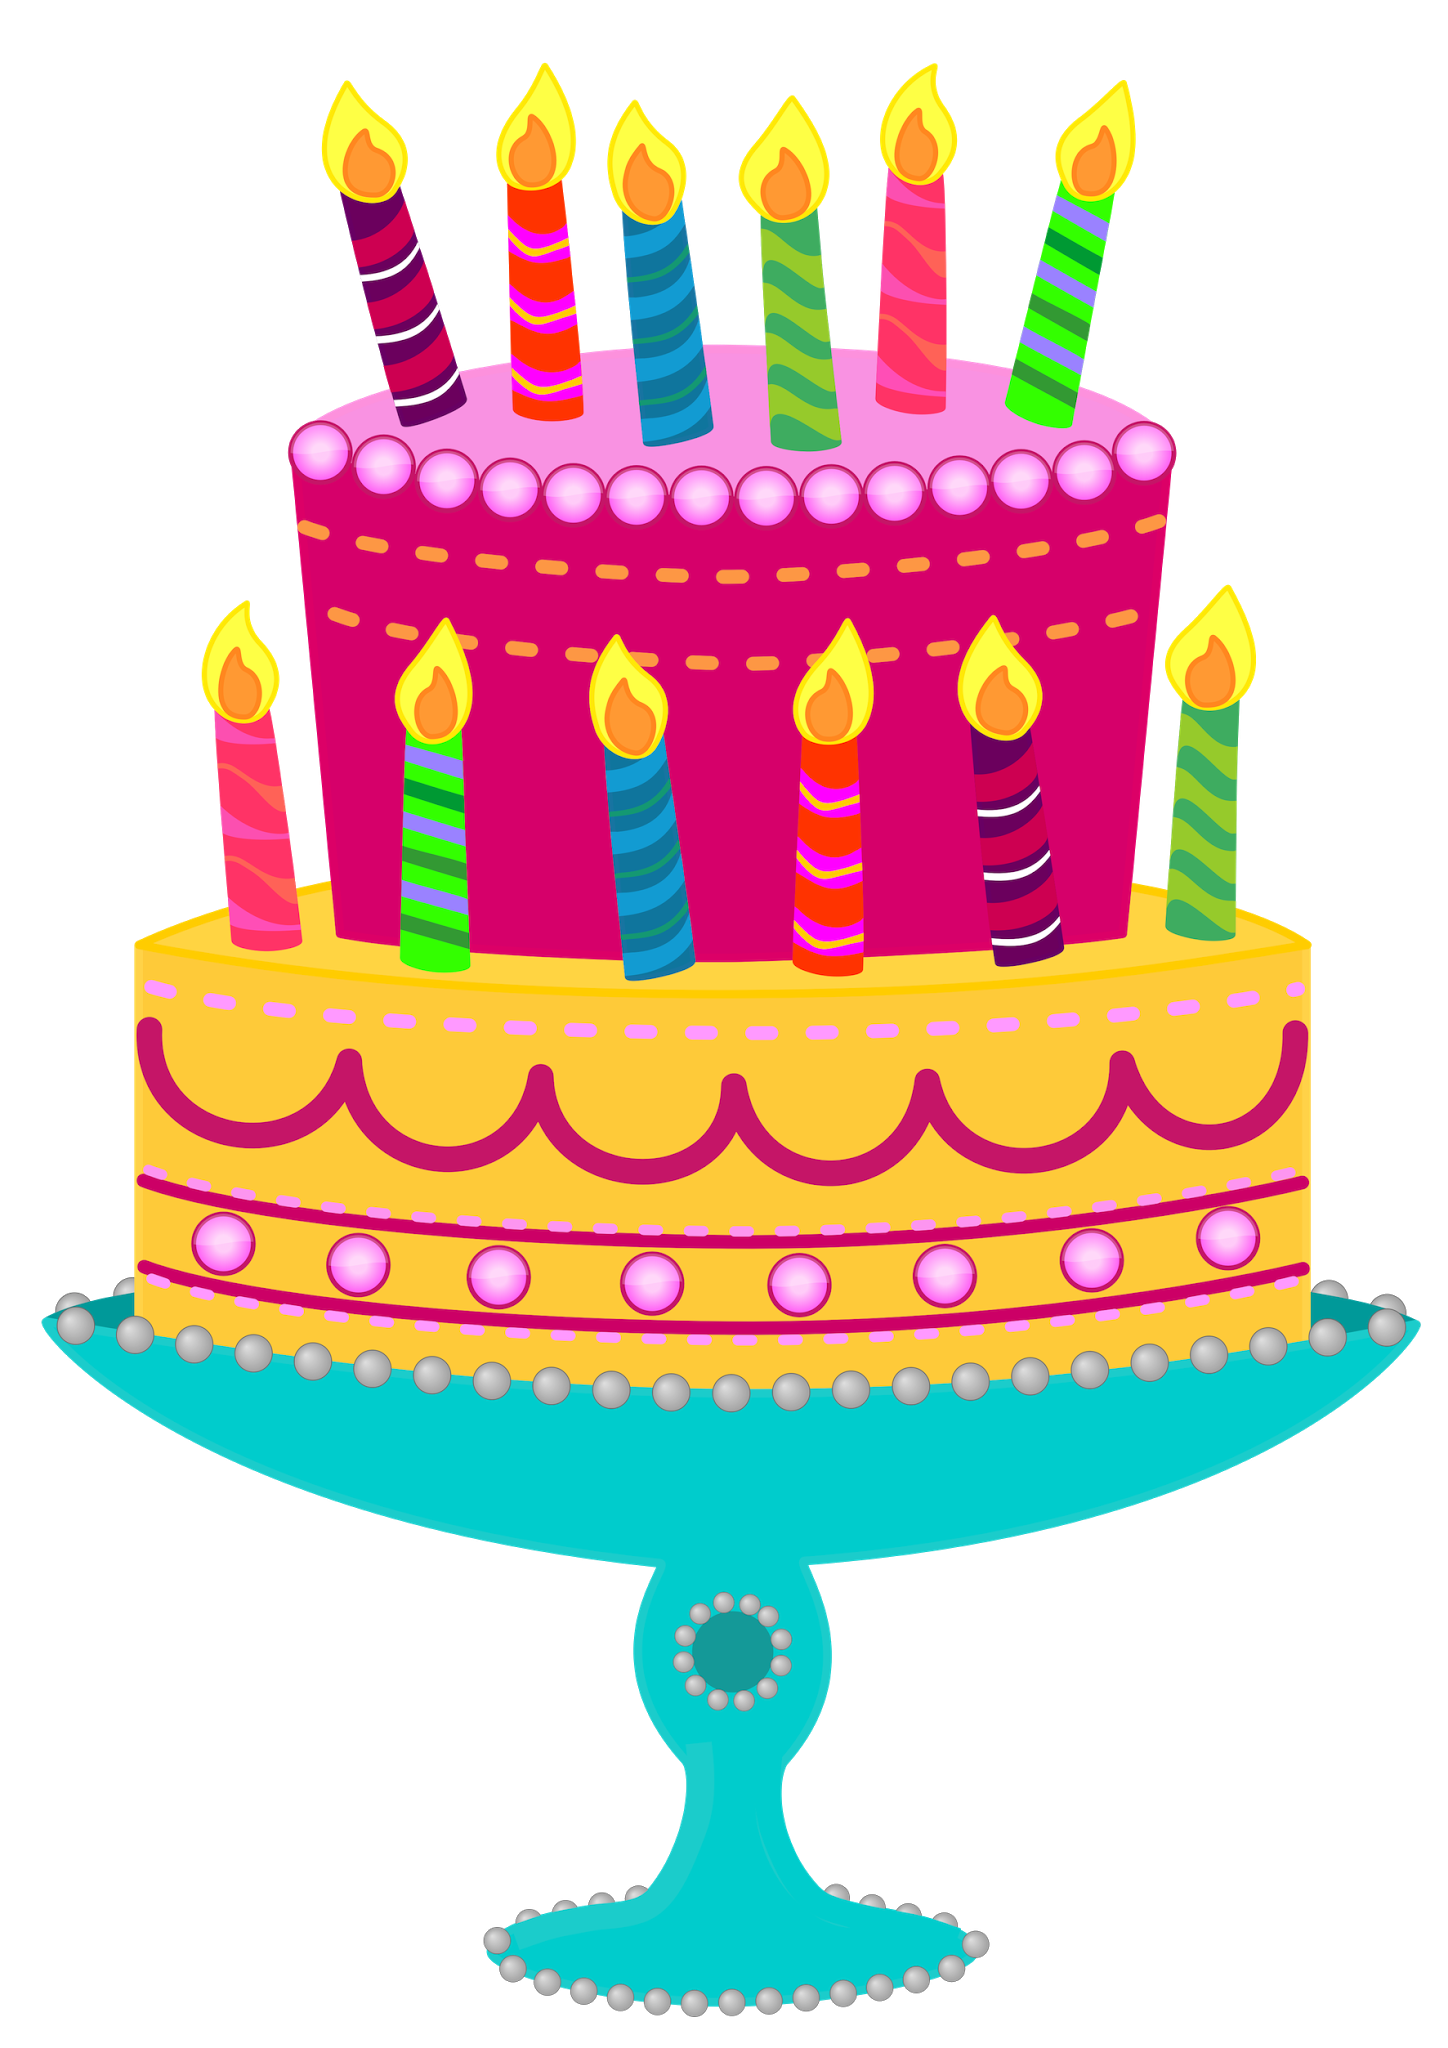 Clipart Birthday Dancing Cake : Free Cake Images - Cliparts.co Paper Images Pinterest ...